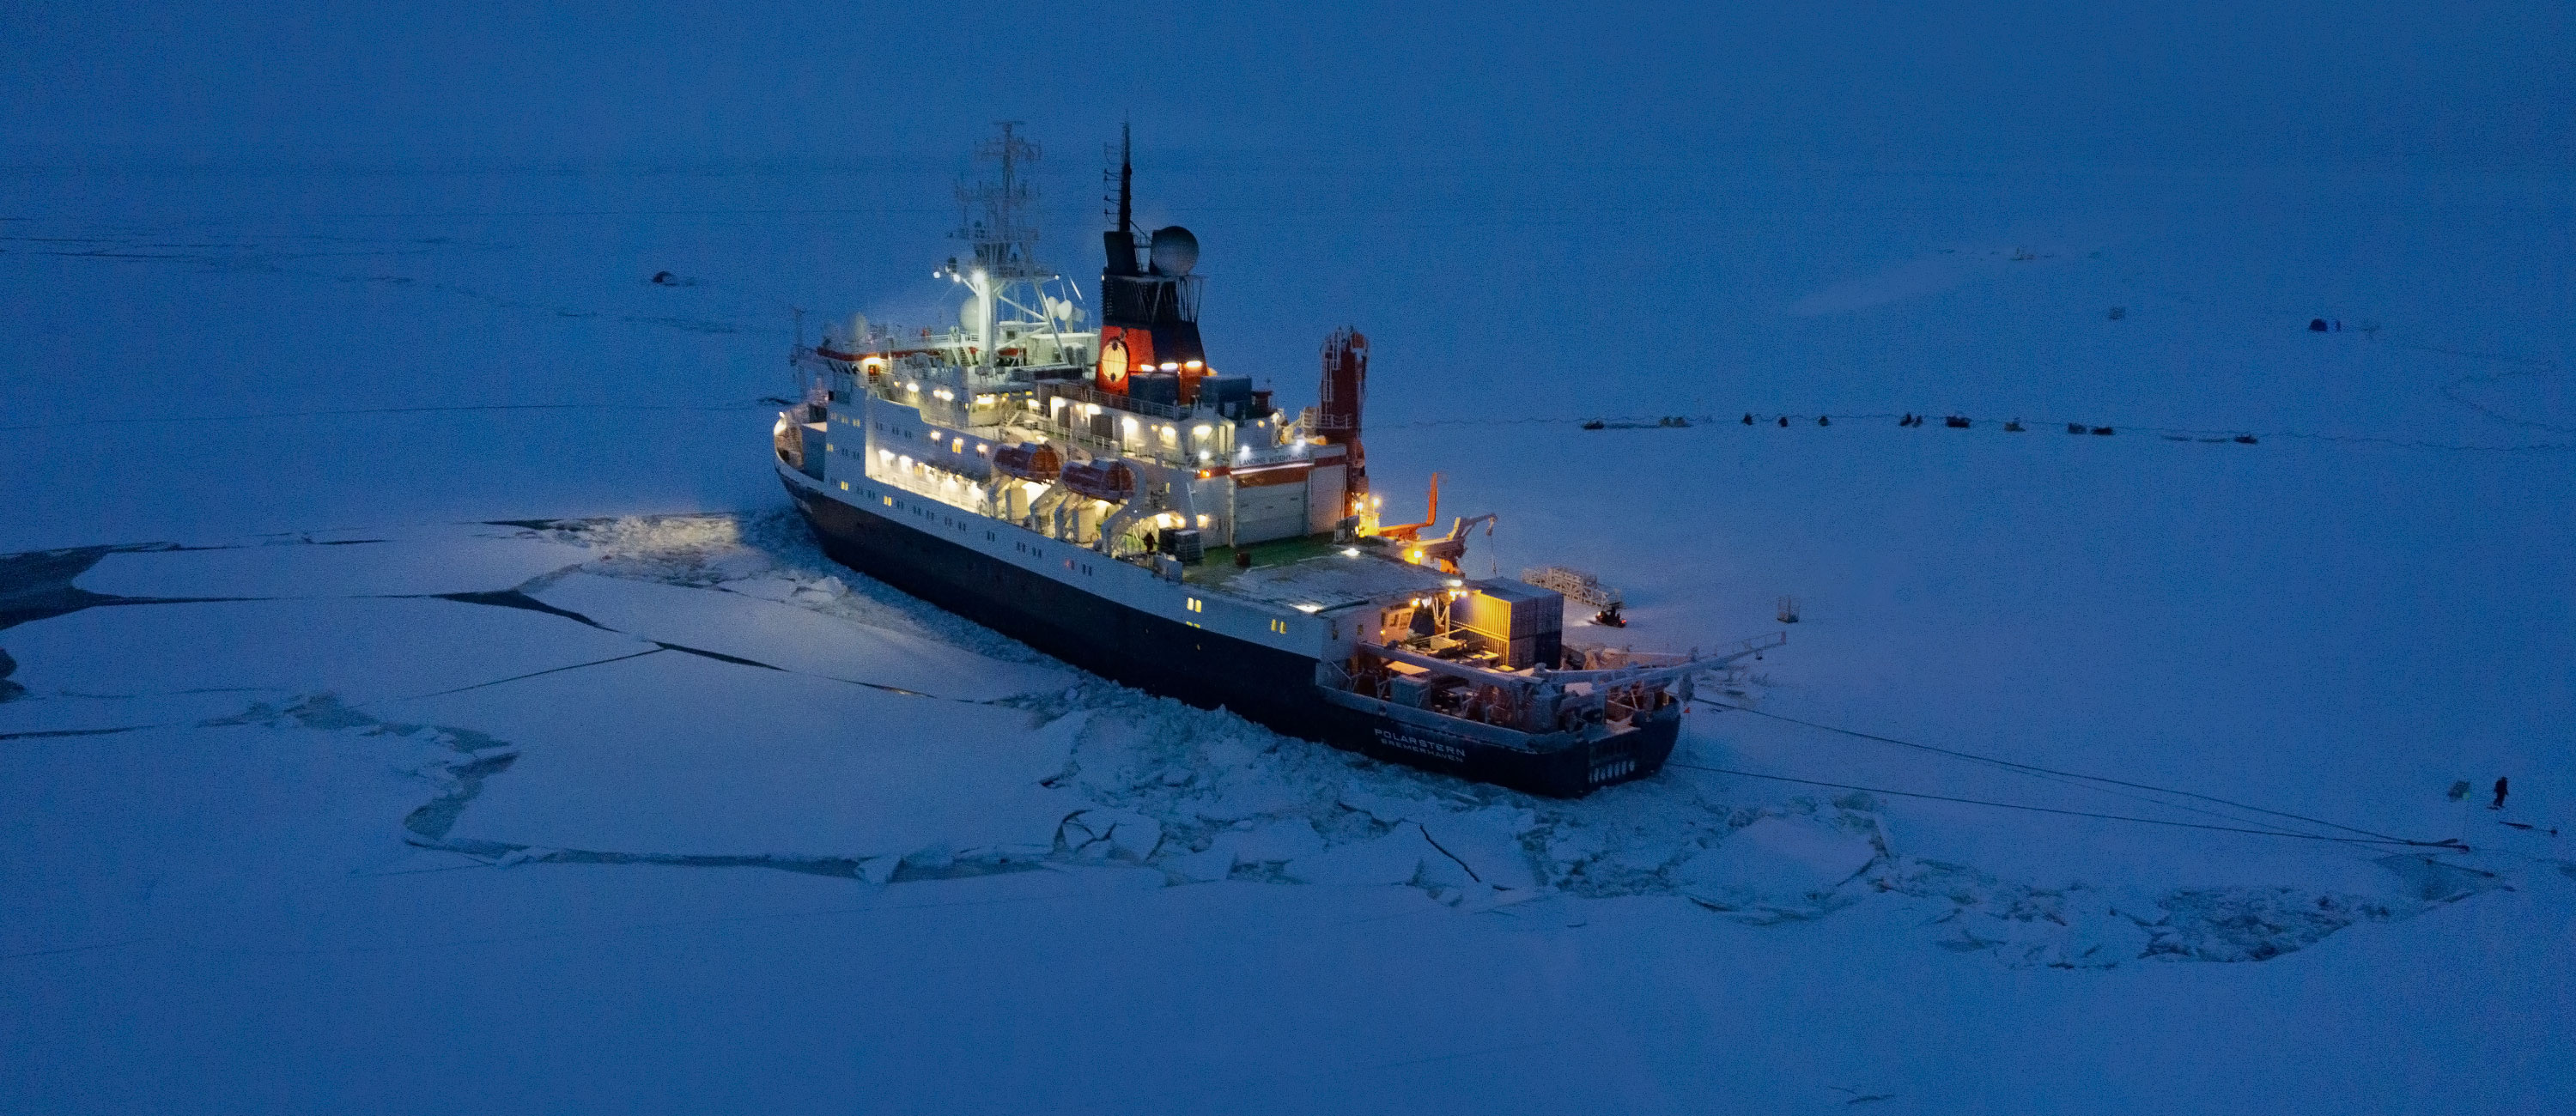 The Polarstern icebreaker in sea ice.